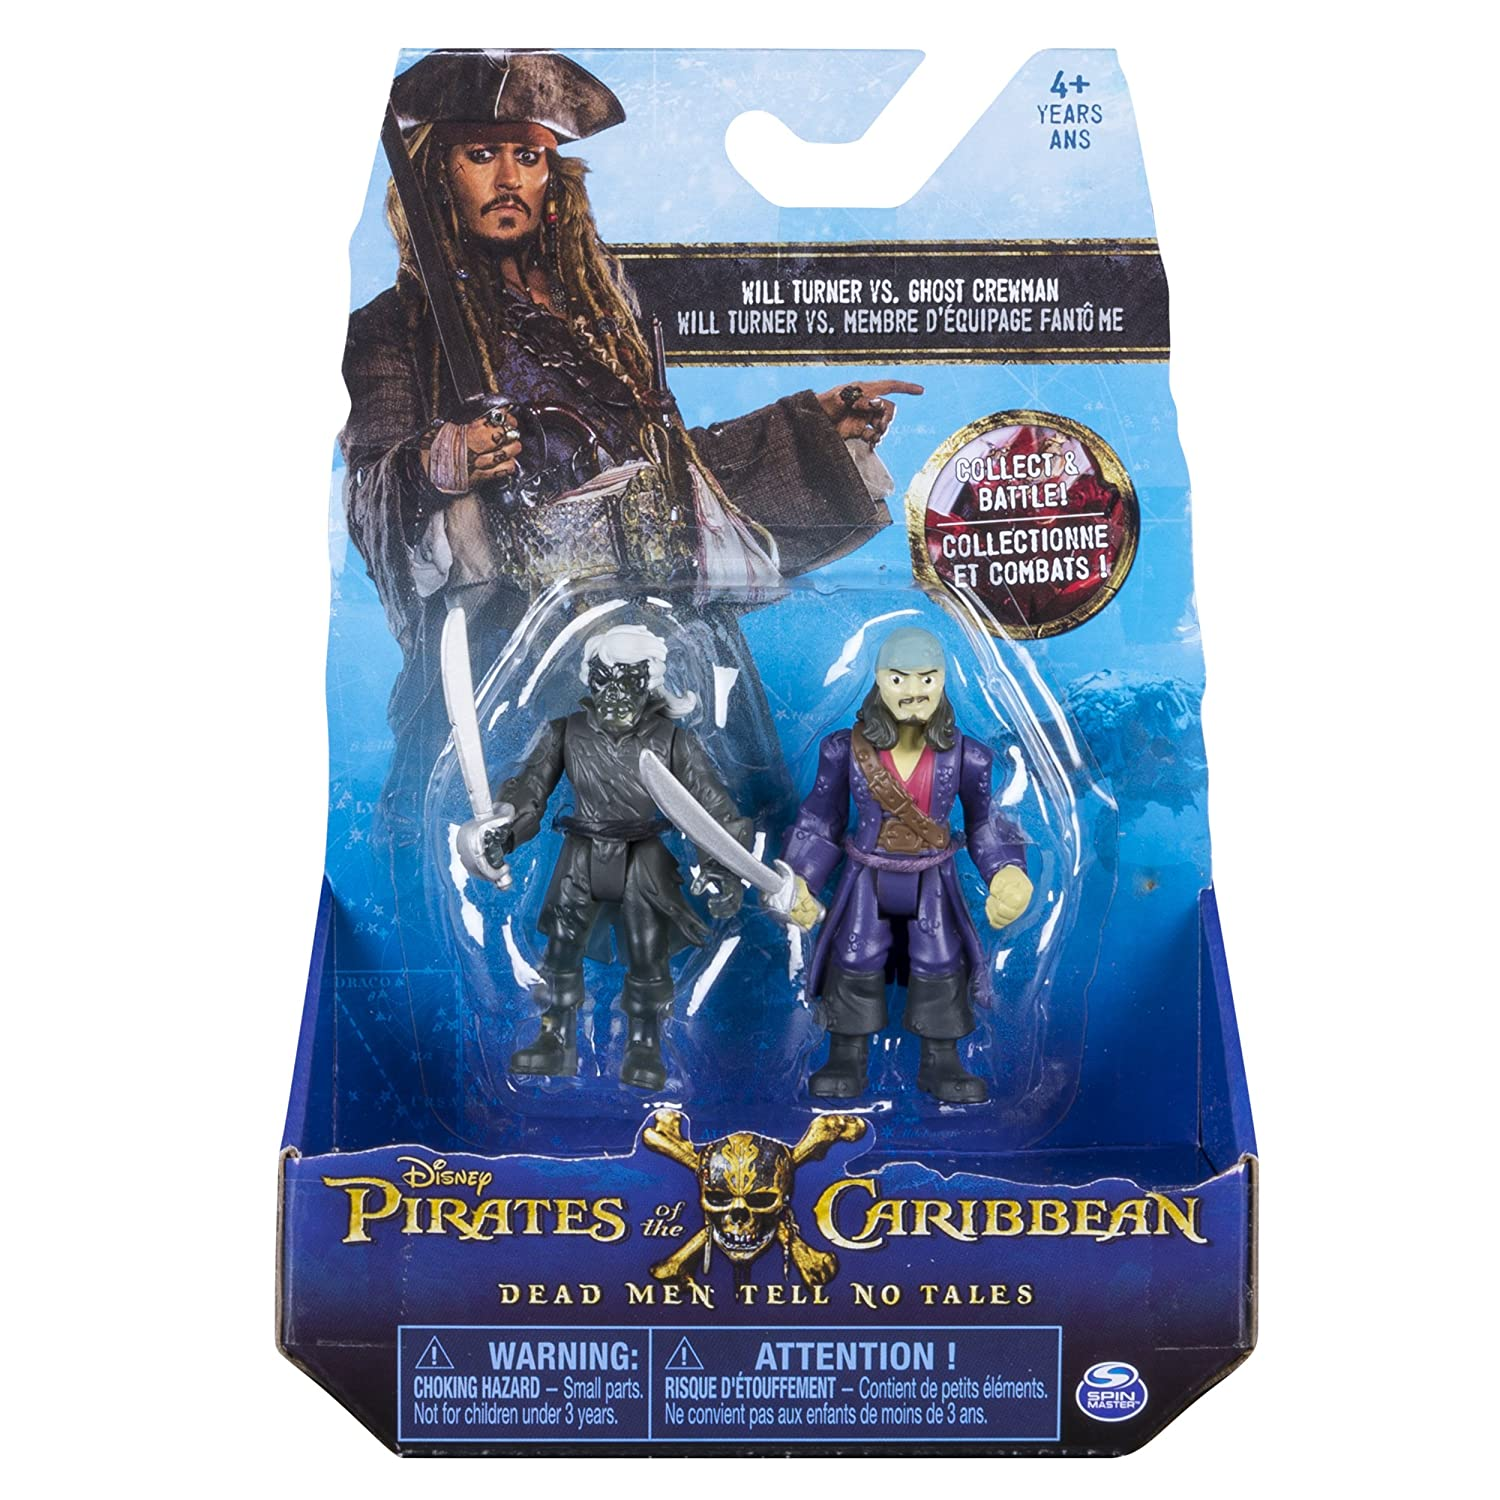 Action Figure 2-Pack Will Turner vs Ghost Crewman Pirates of the Caribbean: Dead Men Tell No Tales